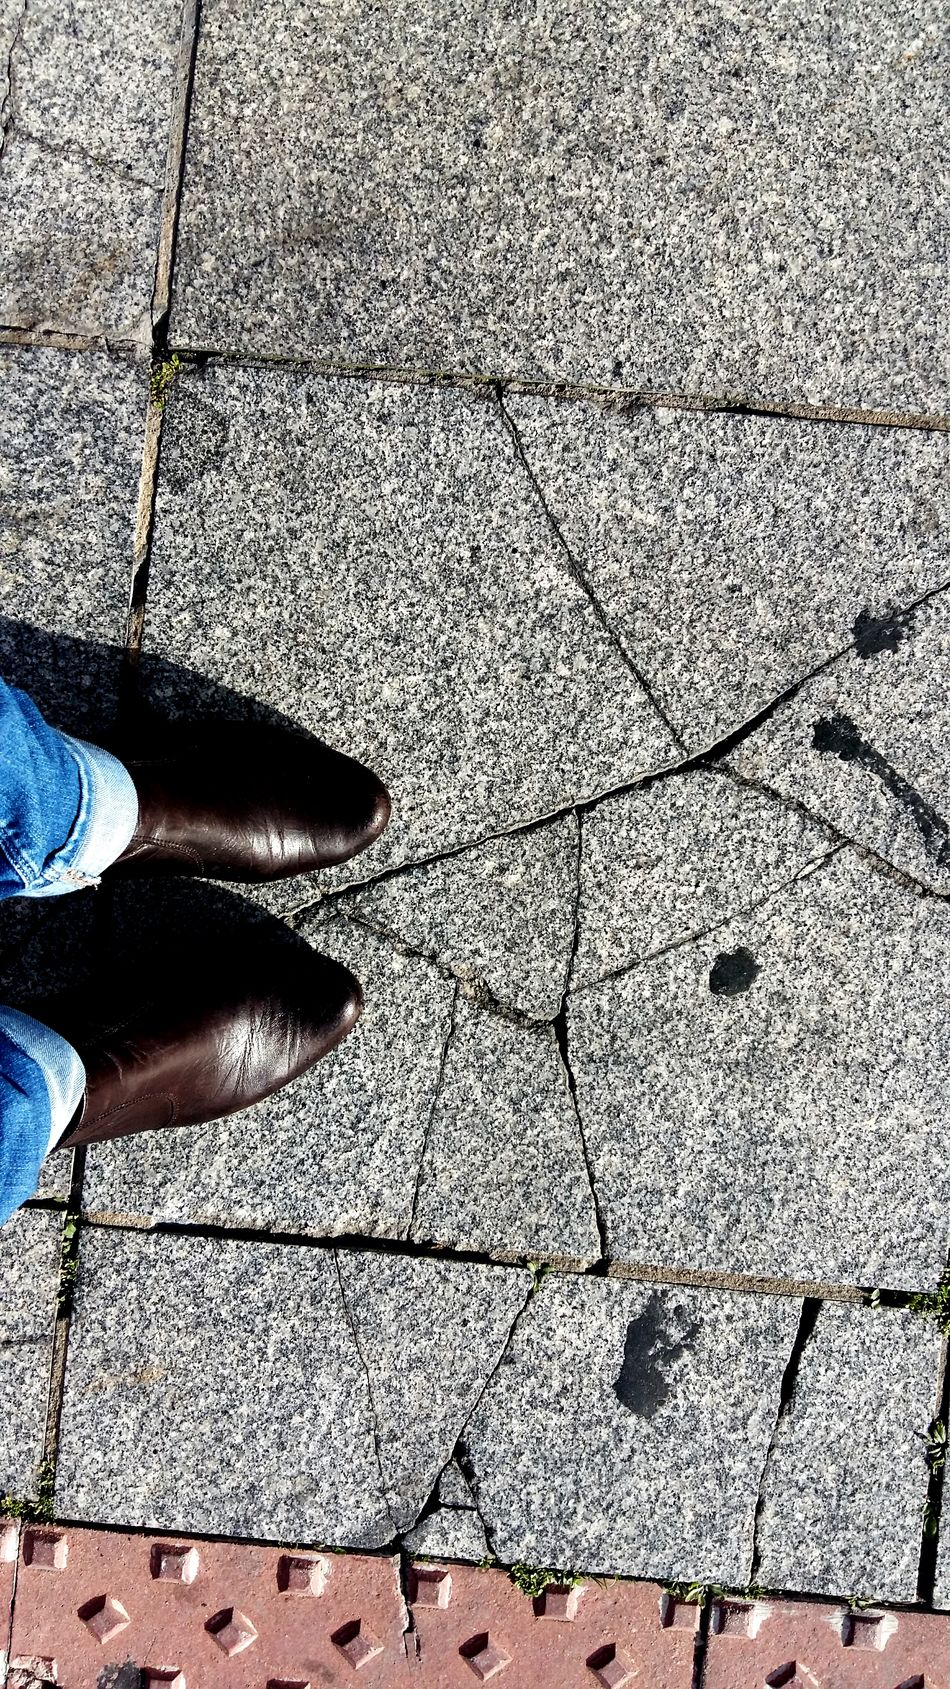 Walking Around The City  Walking On The Street Streetphotography Streetfashion Stree Photography Urban Photography Urban Scene Urban Fashion Tilesphotography Broken Tiles Boots And Jeans Womanfashion Blogger City